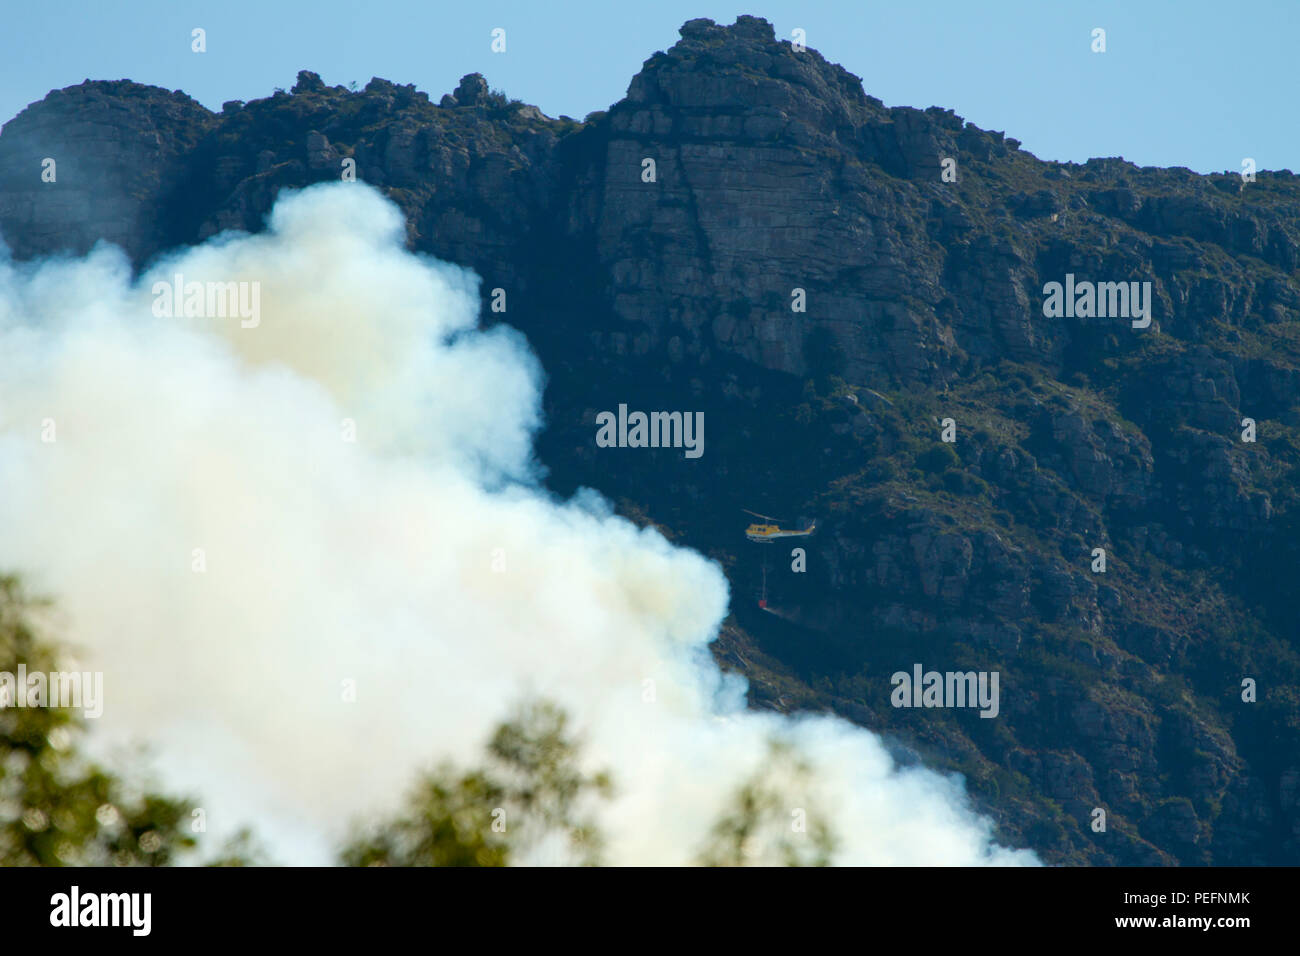 Firefighters tackle a forest fire on table mountain using helicopters - Stock Image